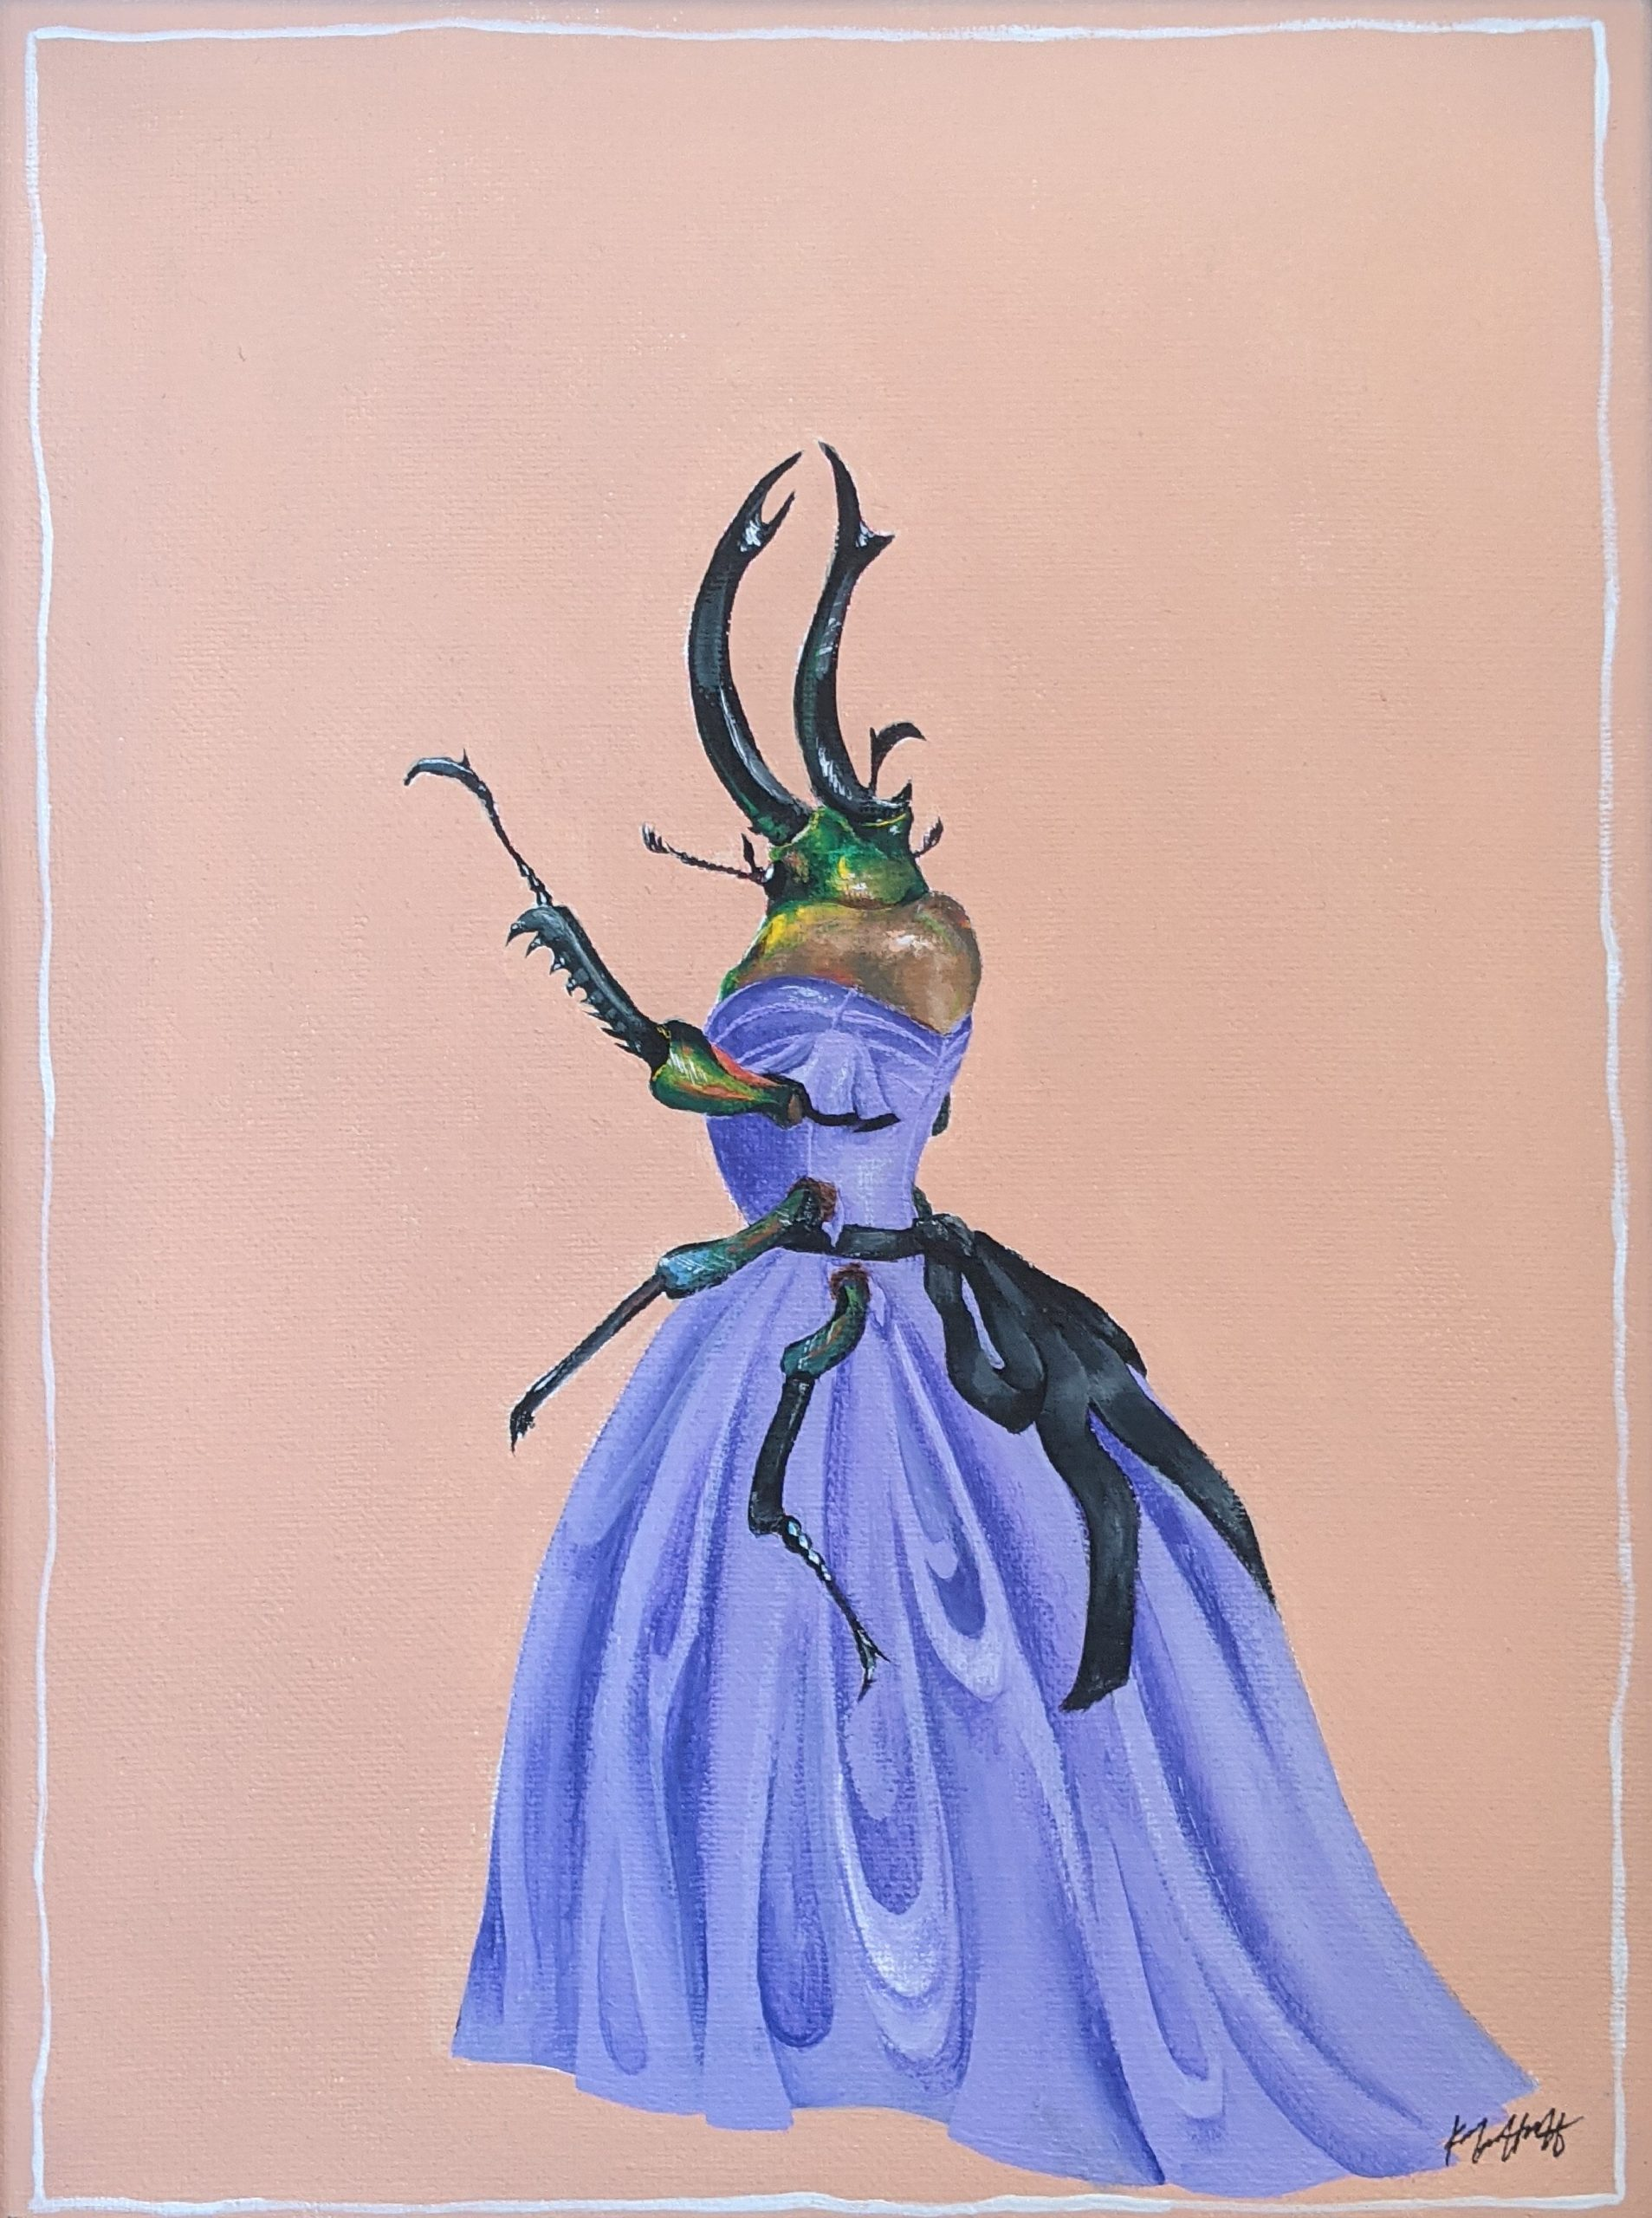 """Grades 9-10, """"Untitled (Beetle in a Dress)"""" by Keiko Huff"""